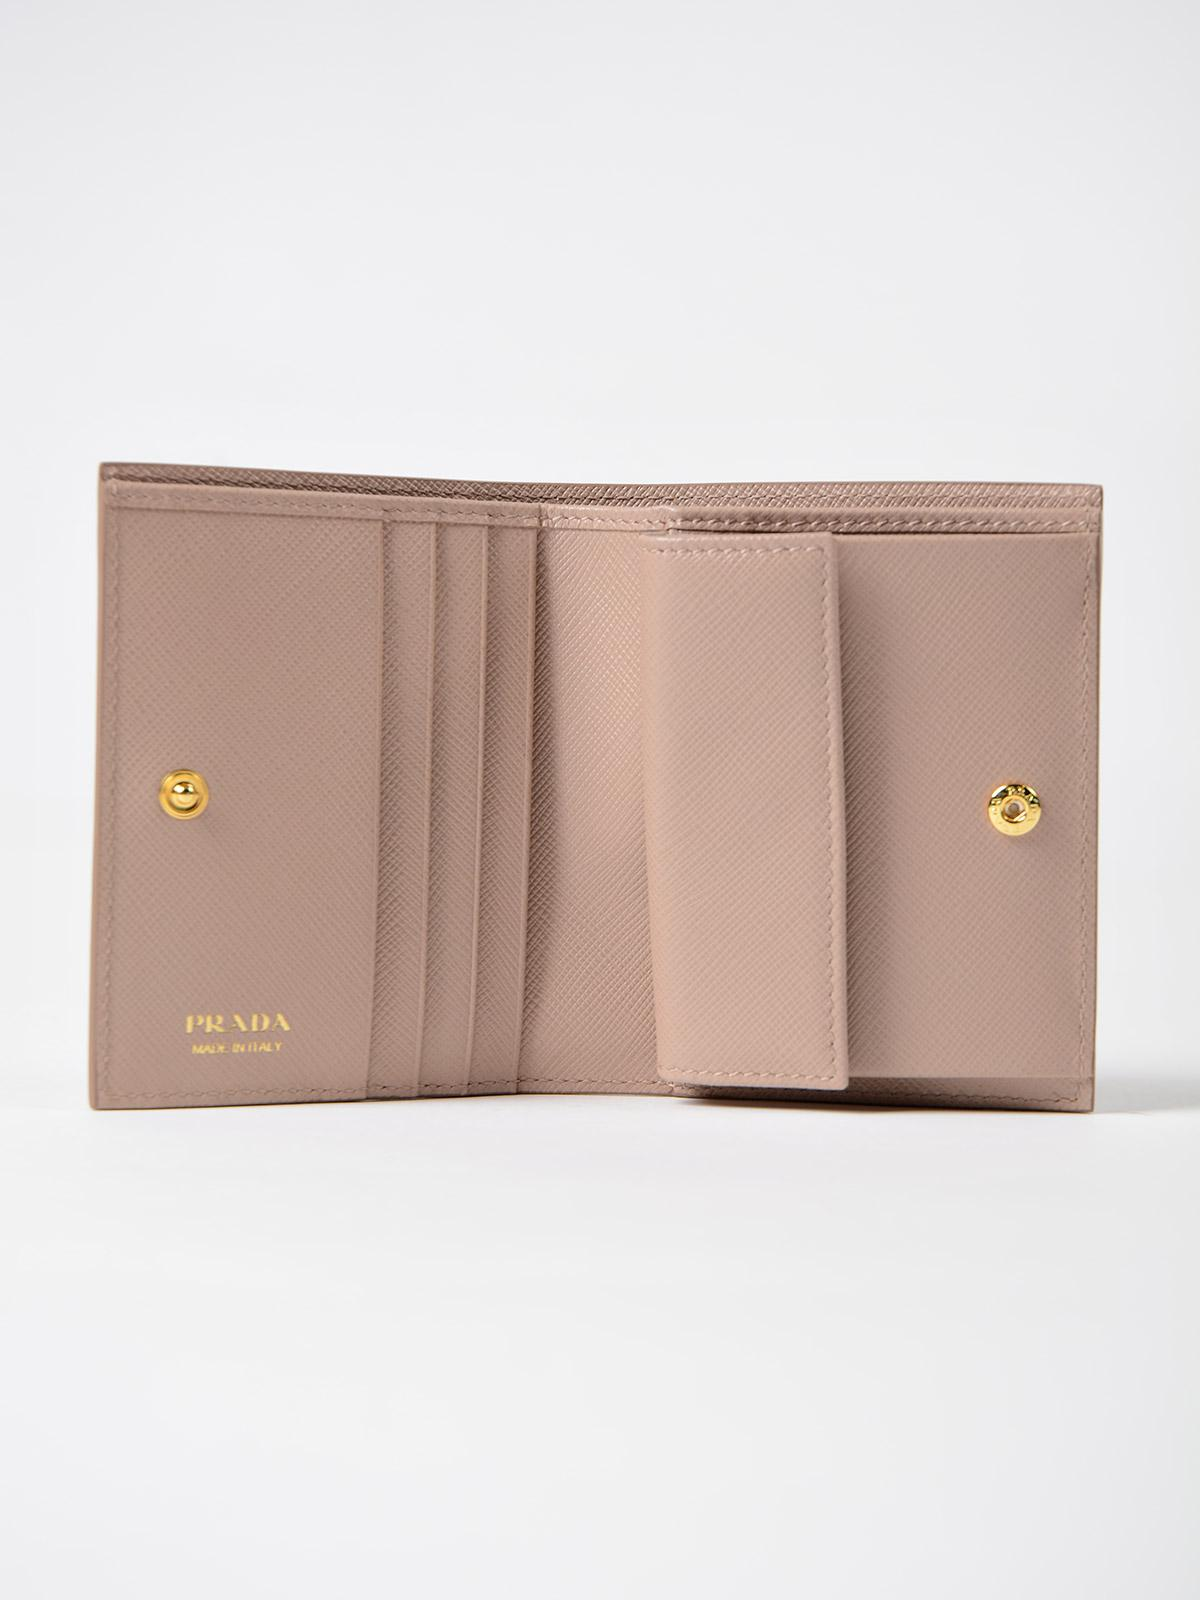 quality products for whole family preview of Saffiano Shine Small Wallet